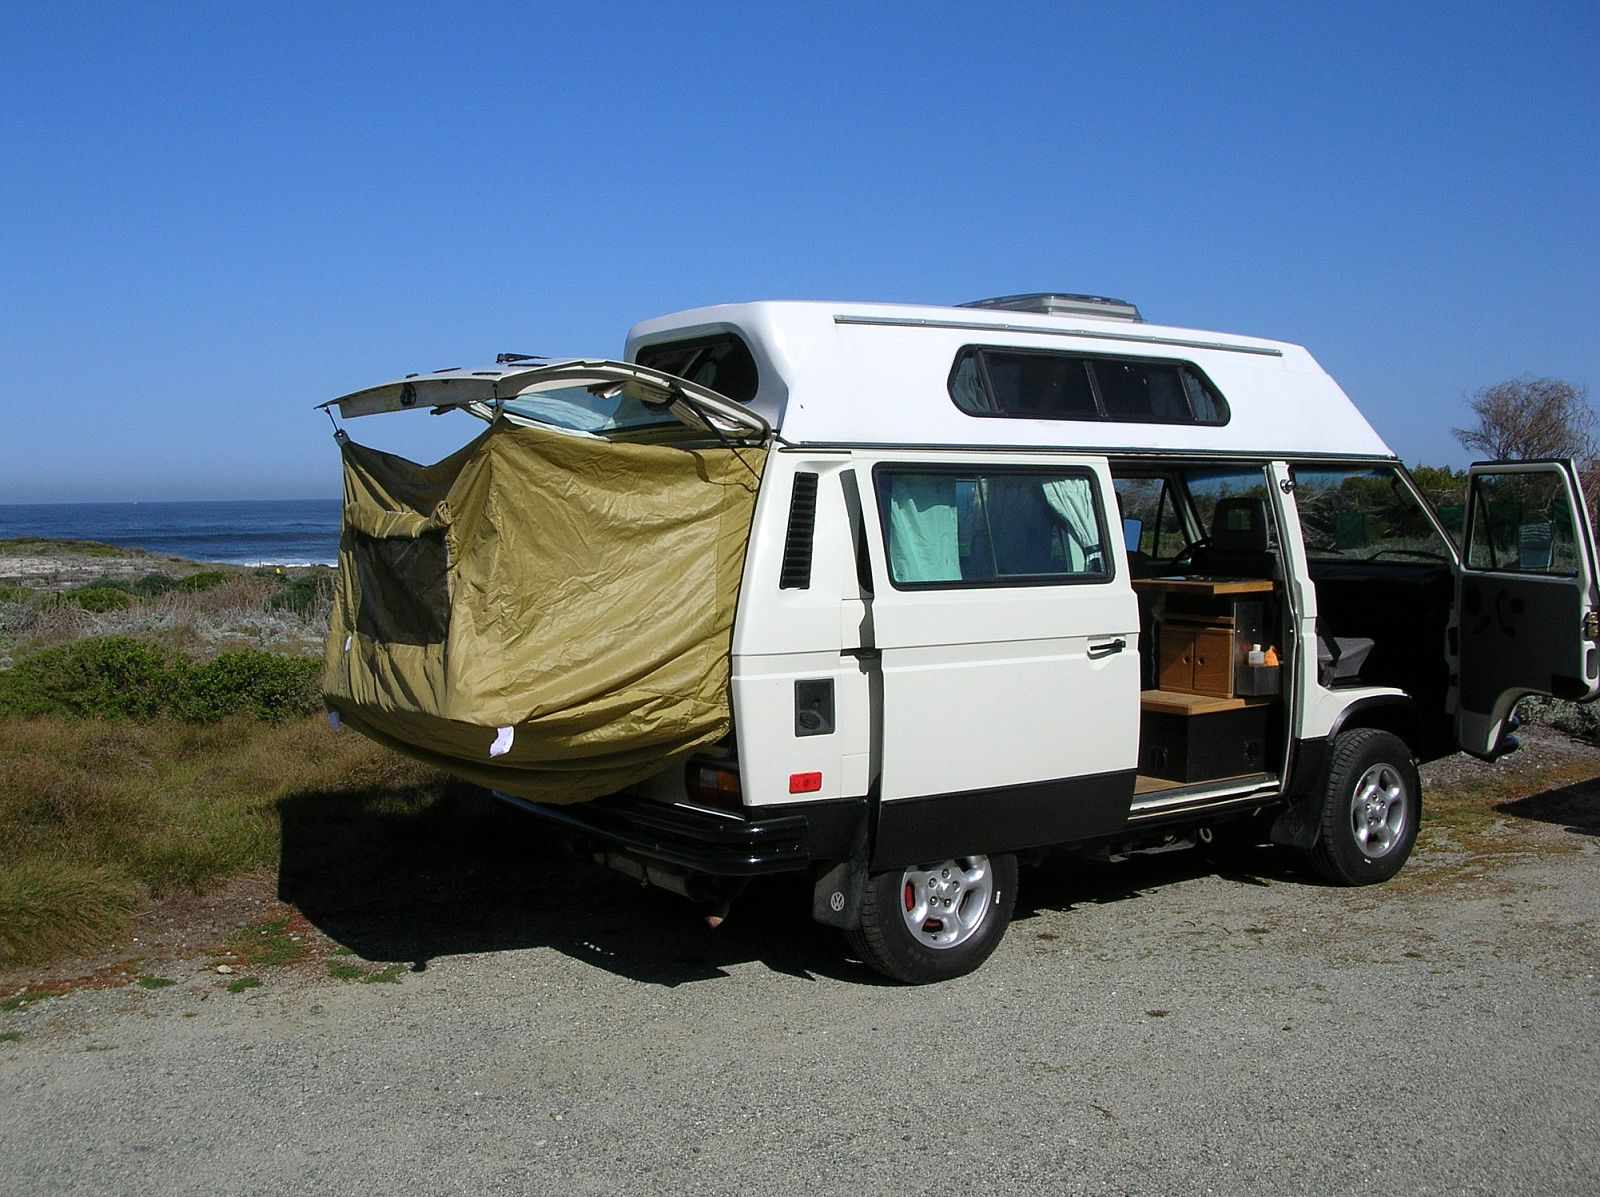 Image may have been reduced in size. Click image to view fullscreen. & TheSamba.com :: Vanagon - View topic - Rear hatch rain fly concept...